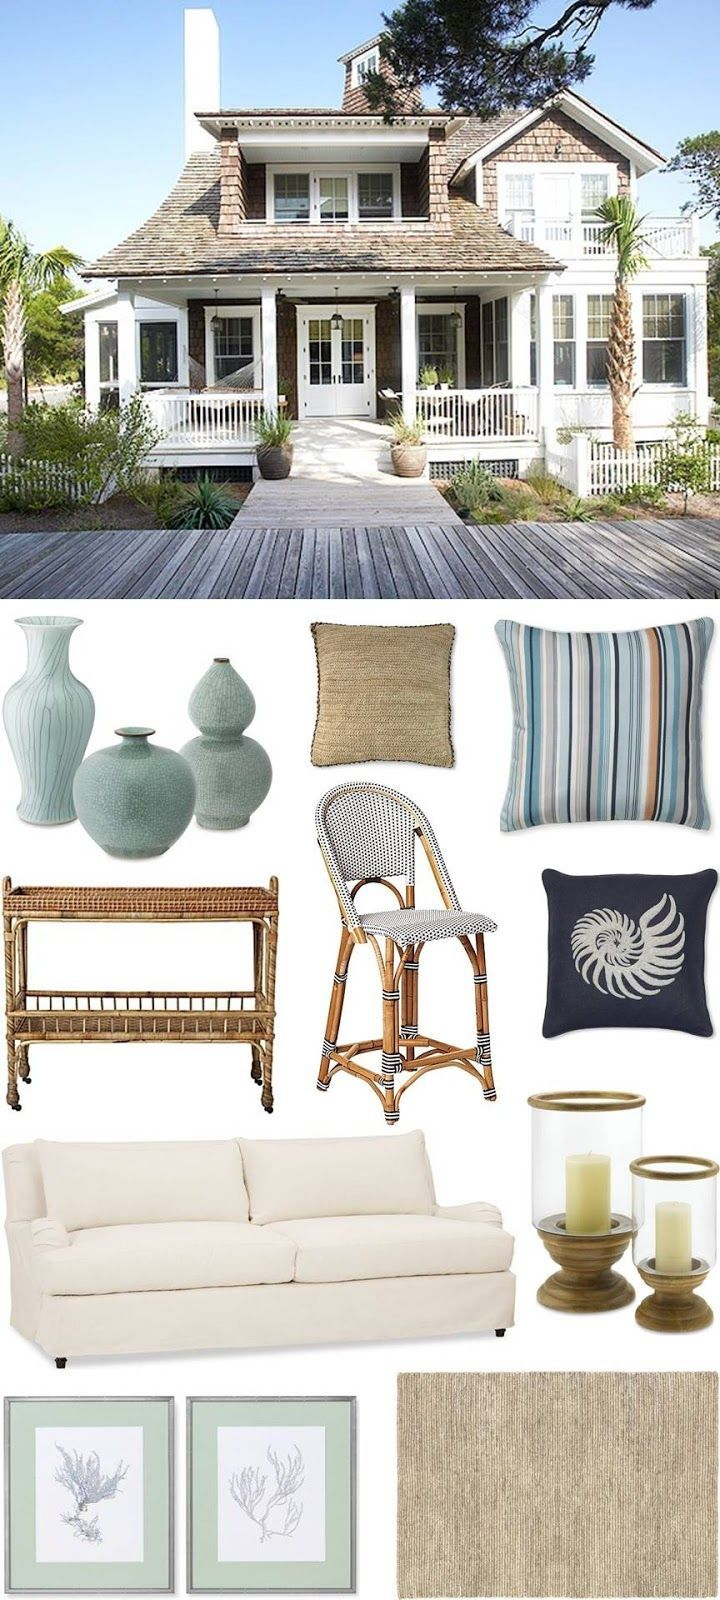 Best 25+ Hampton beach ideas on Pinterest | Hamptons new york ...